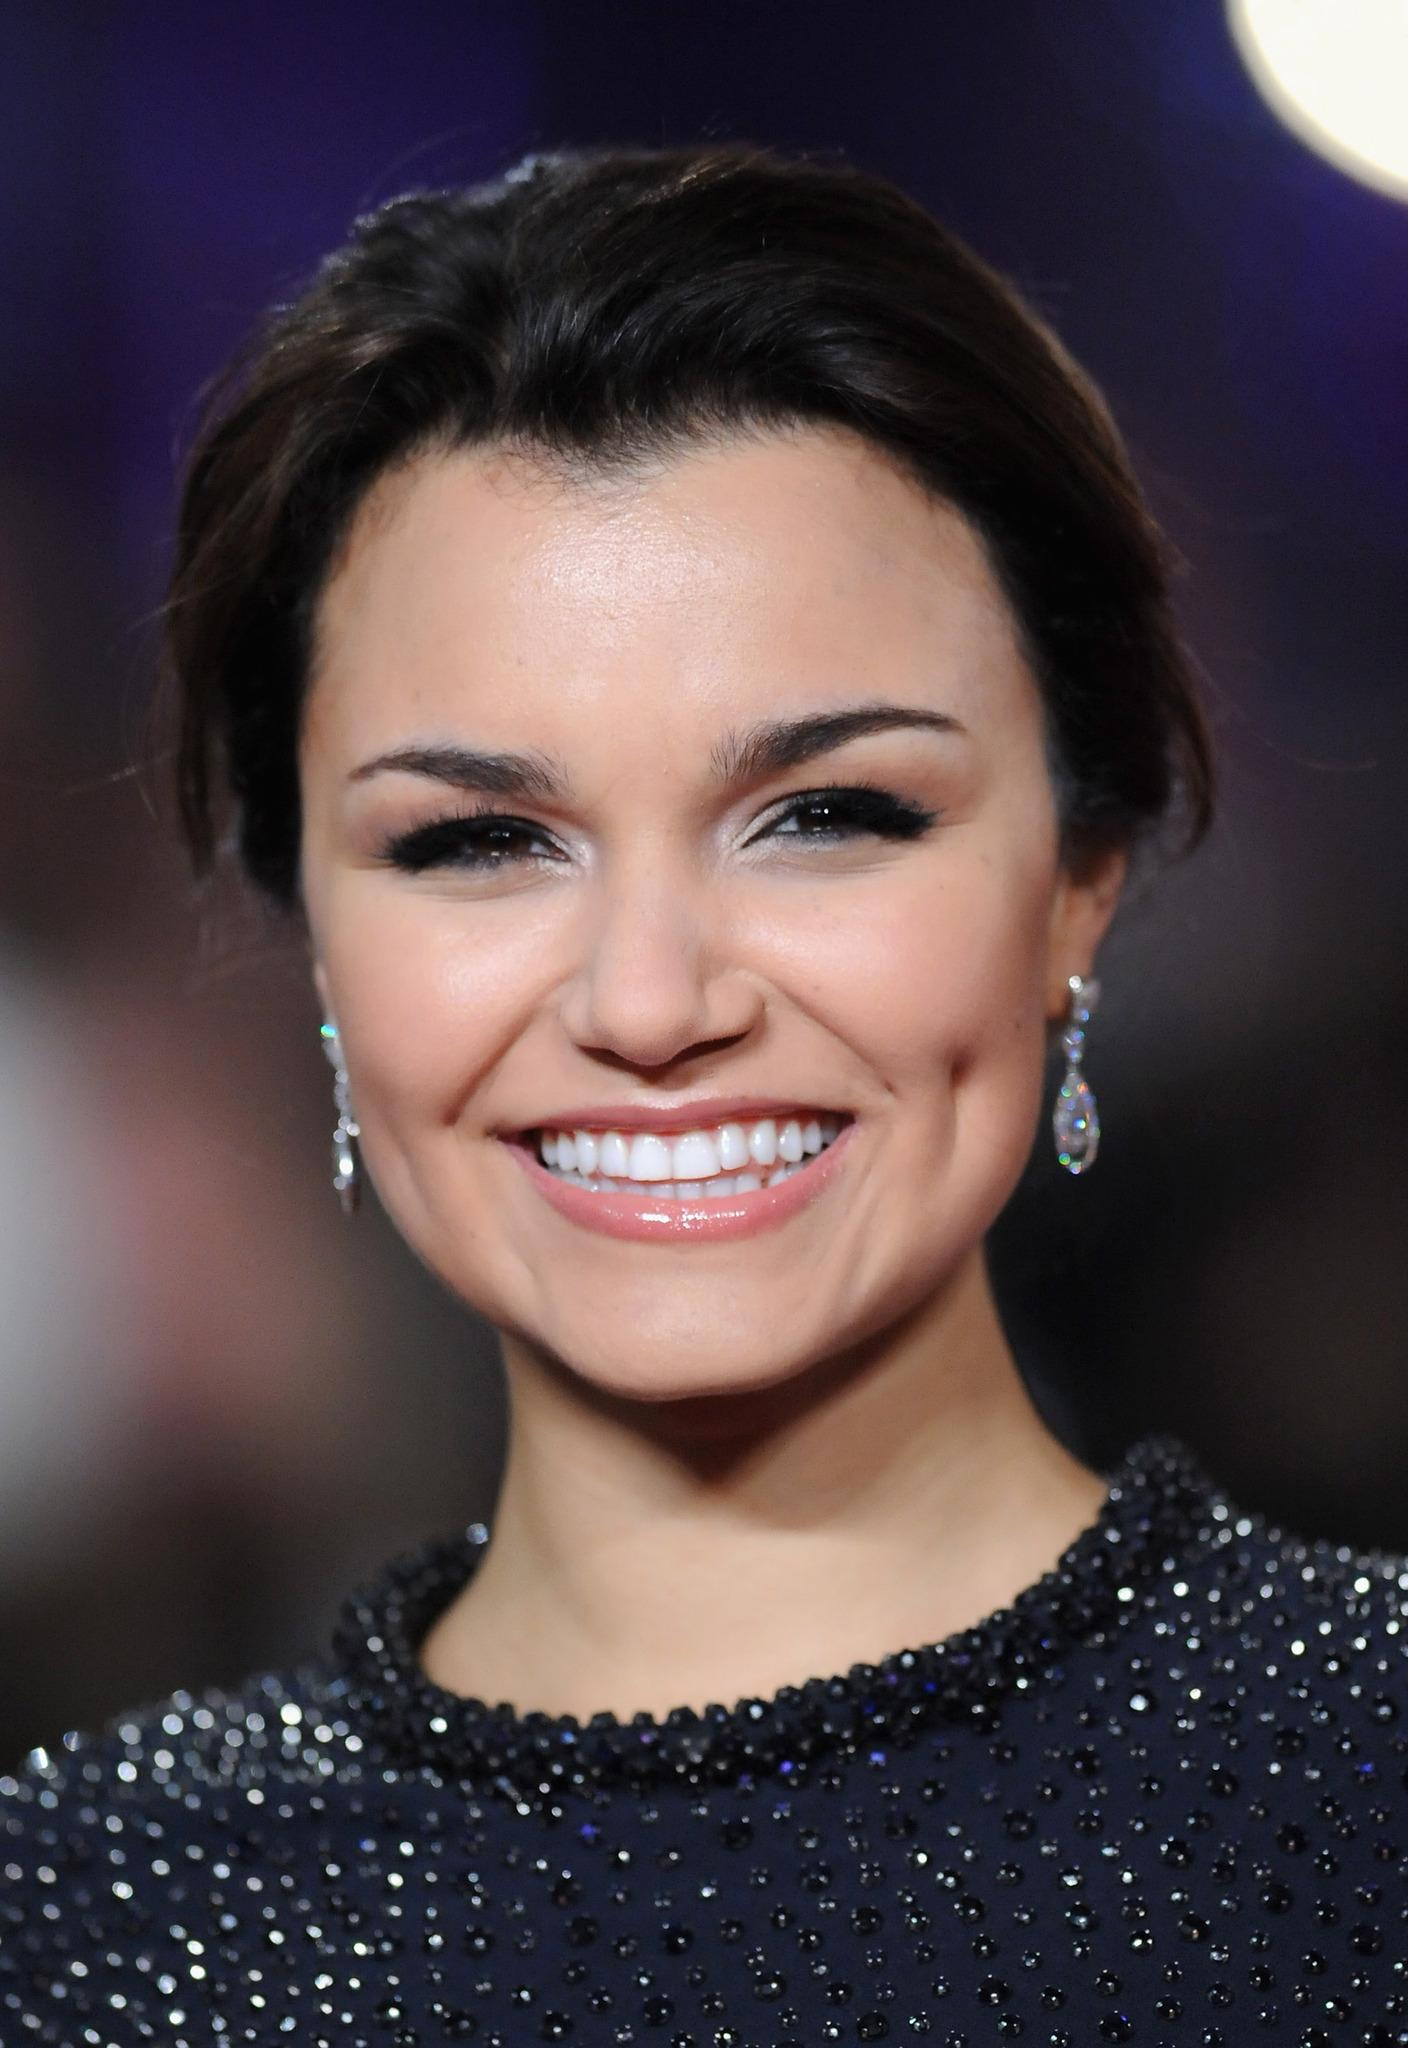 Samantha Barks Is Certainly The STAR Of The Moment